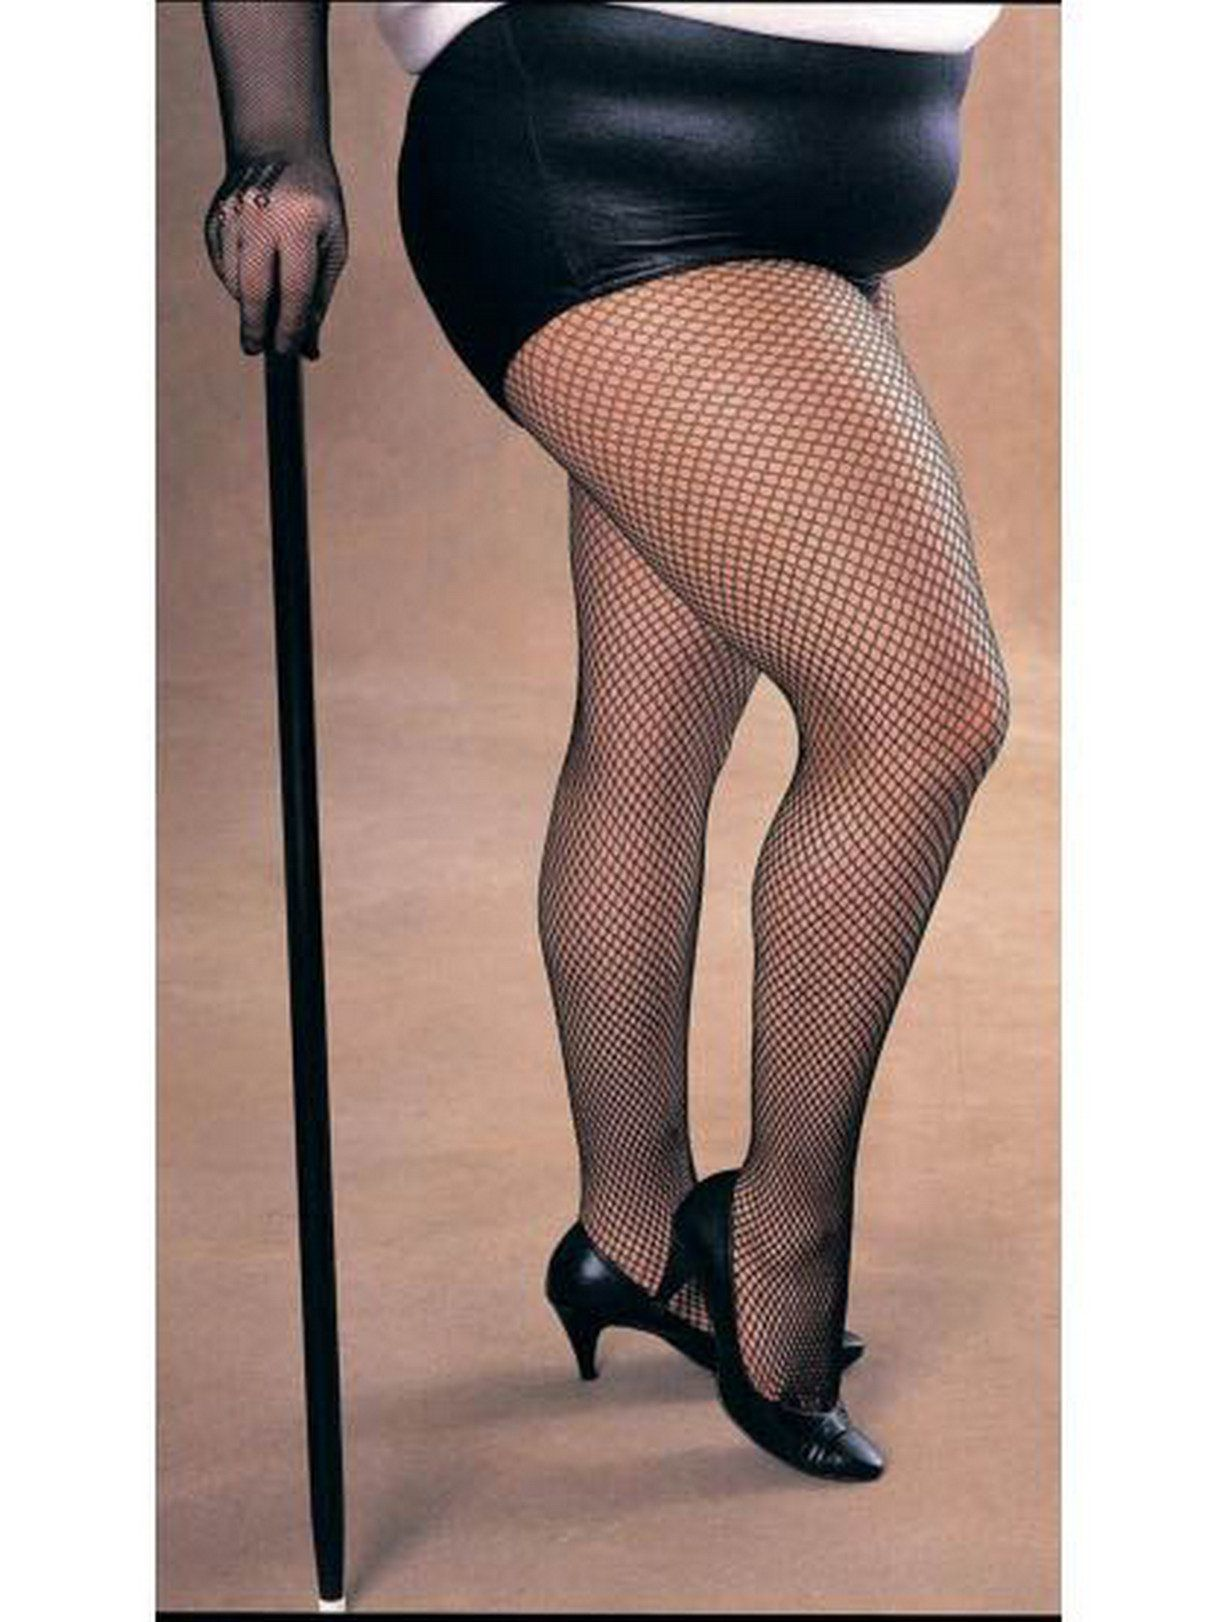 96c2a74a1 Plus Size Womens Fishnet Tights - Costume Accessories for 2018 ...